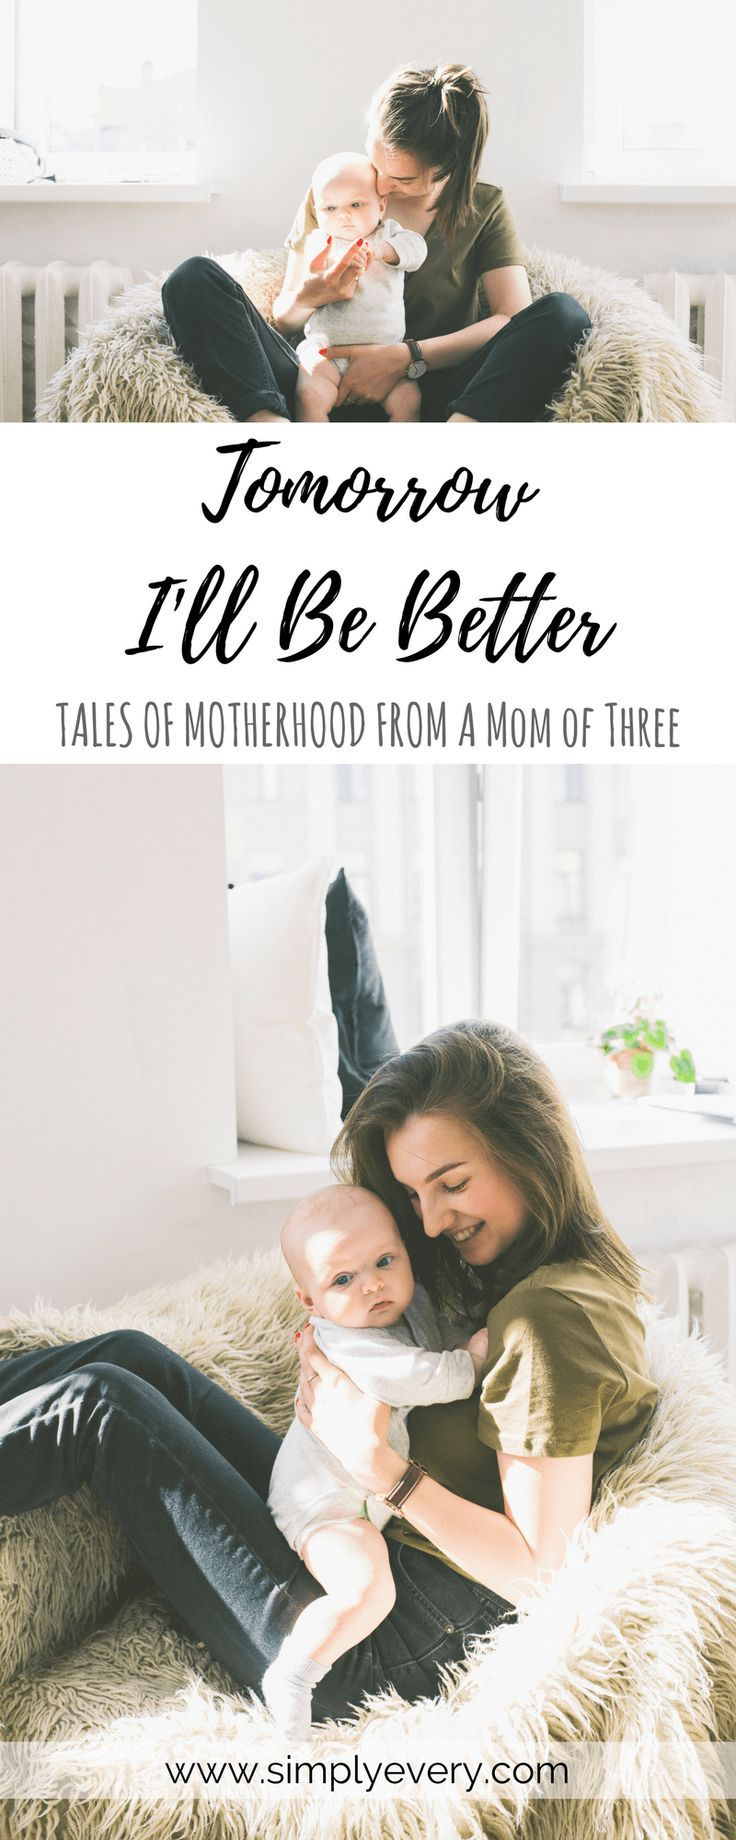 Tomorrow I'll Be Better, tales of motherhood from a mom of three, parenting, mom life, encouragement for moms, motherhood is hard, there is always tomorrow, reflection, self-help